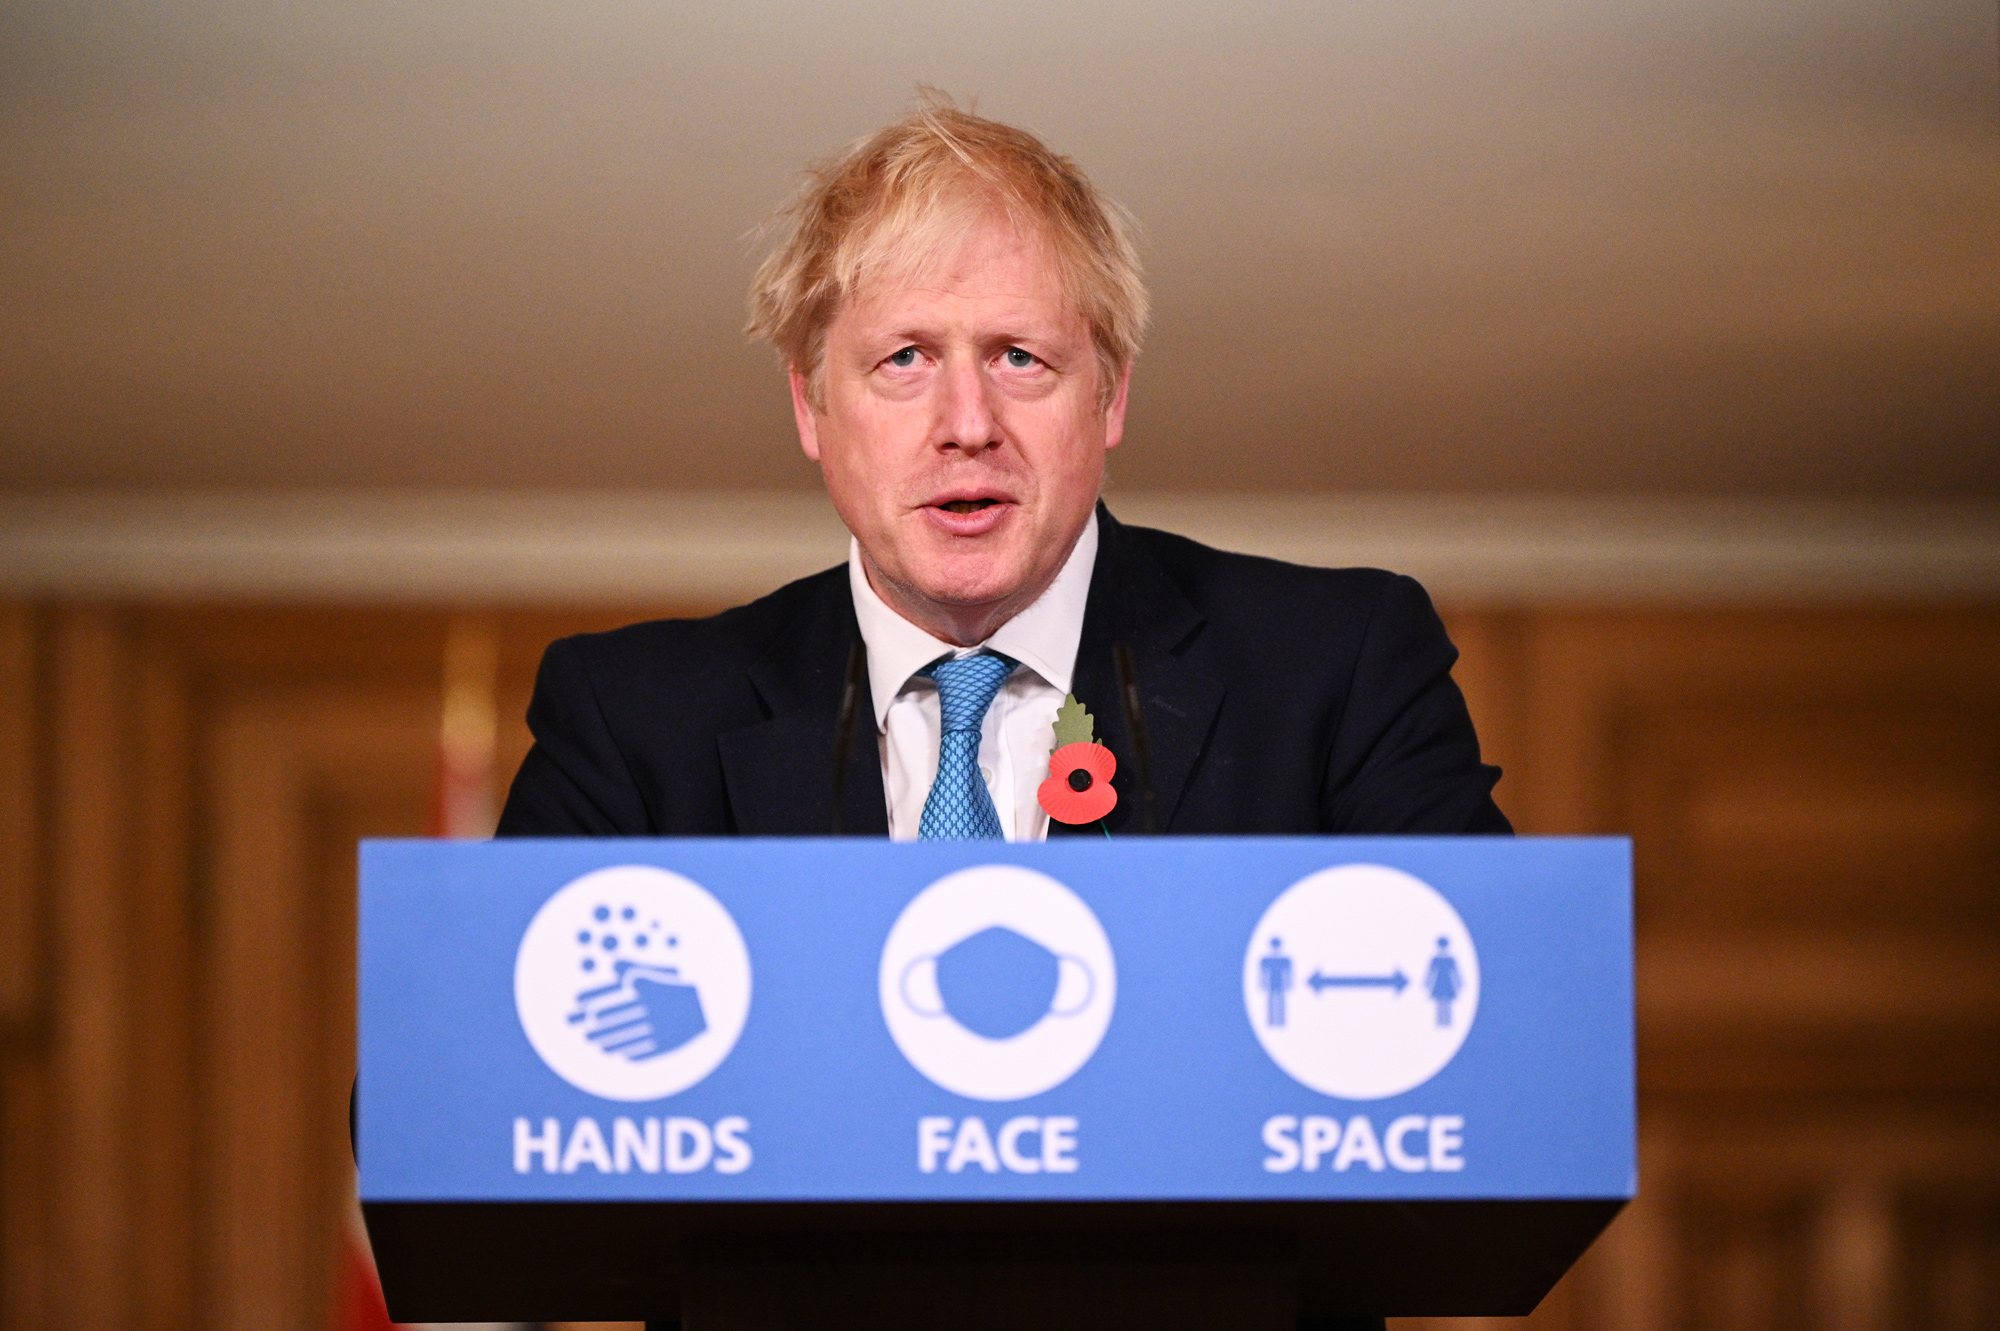 UK Prime Minister Boris Johnson answers questions during a briefing in Downing Street on November 5 in London.